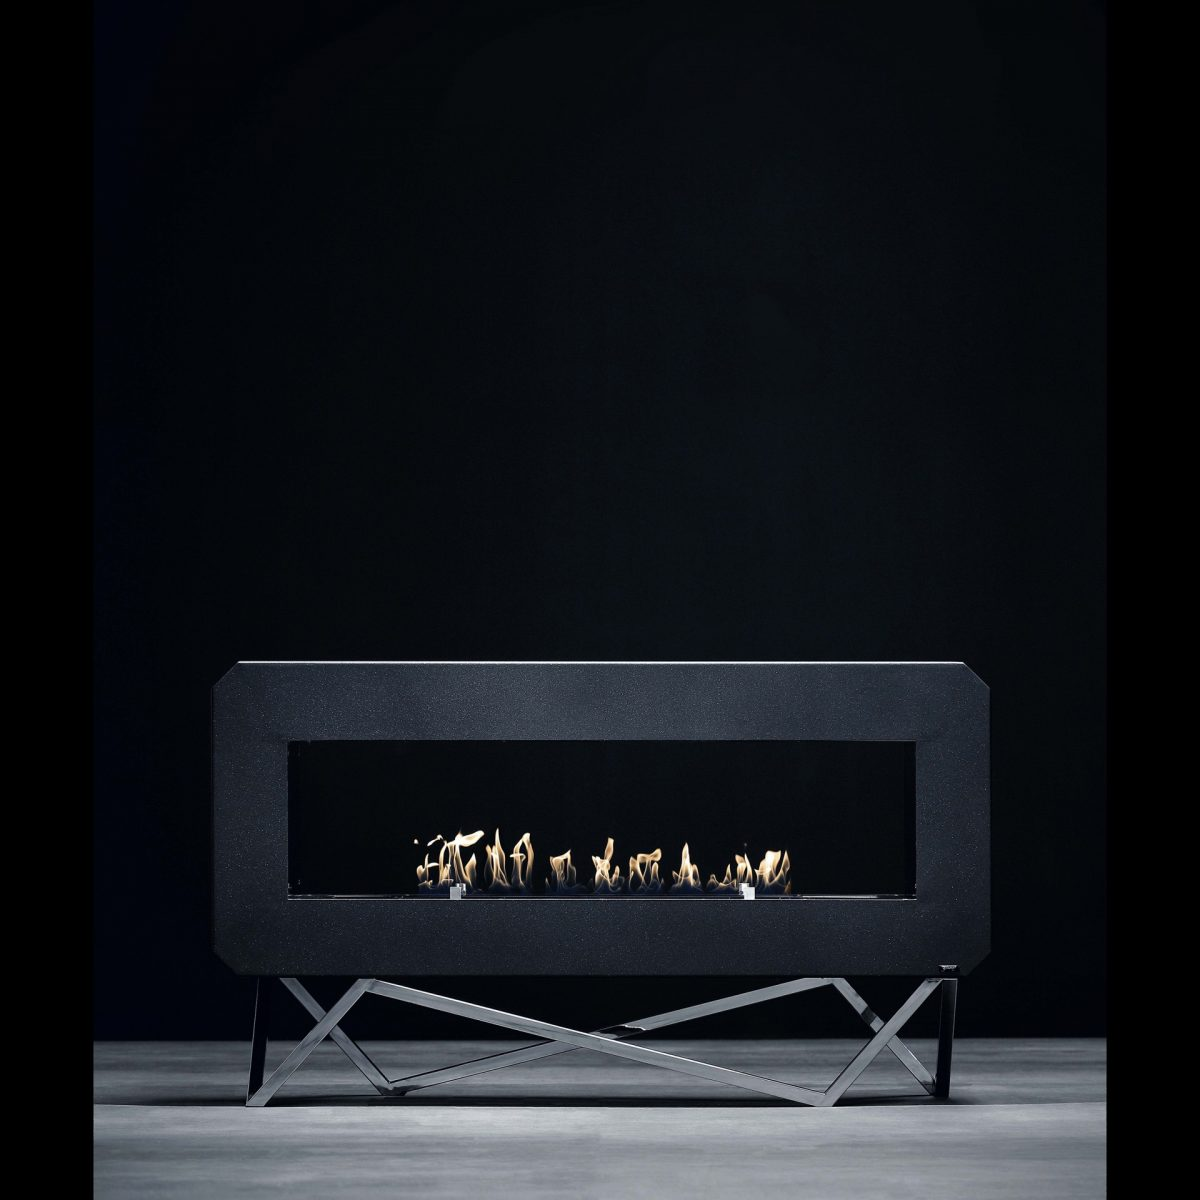 xglammfire_fireplace_urban_hd_001-1-1920×1920.jpg.pagespeed.ic.vDyQyUKSId